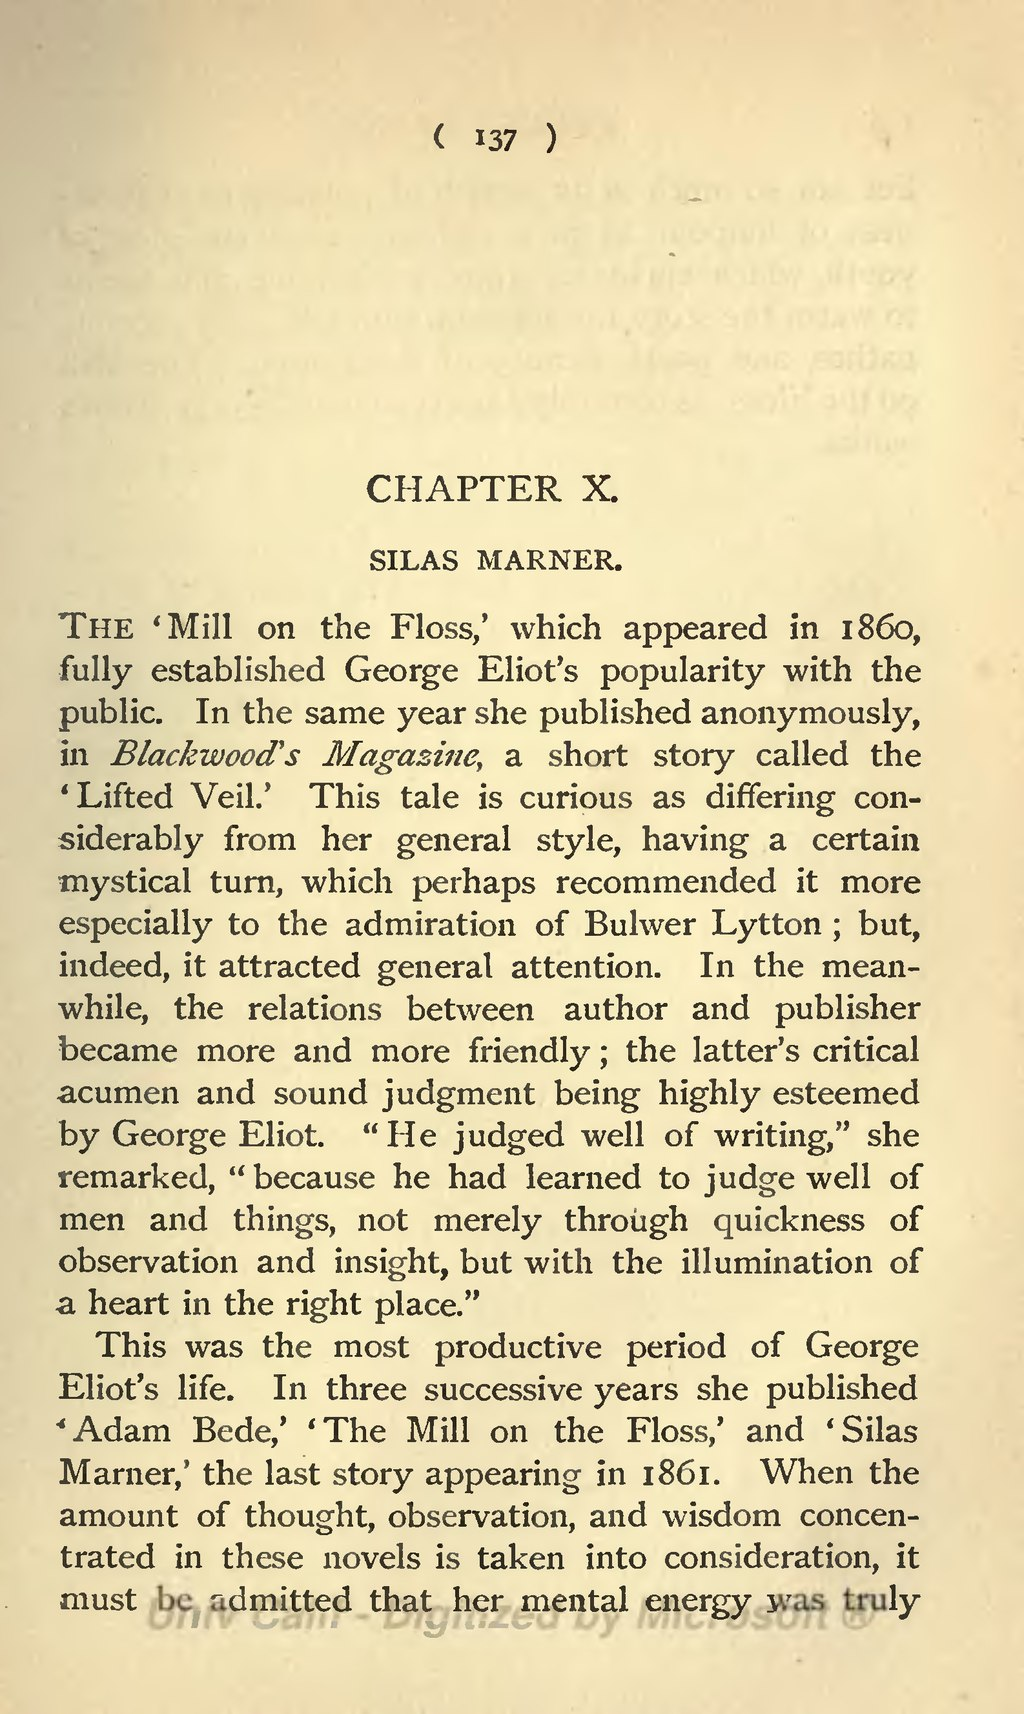 an introduction to the life and literature by george eliot adam bede the mill in the floss middlemar George eliot adam bede, the mill on the floss, middlemarch (columbia critical guides) washington dc: columbia university press isbn 0-231-12423-6 the oxford companion to english literature (1967) rebecca gould, adam bede's dutch realism and the novelist's point of view, philosophy and literature 362 (2013): 423–442.